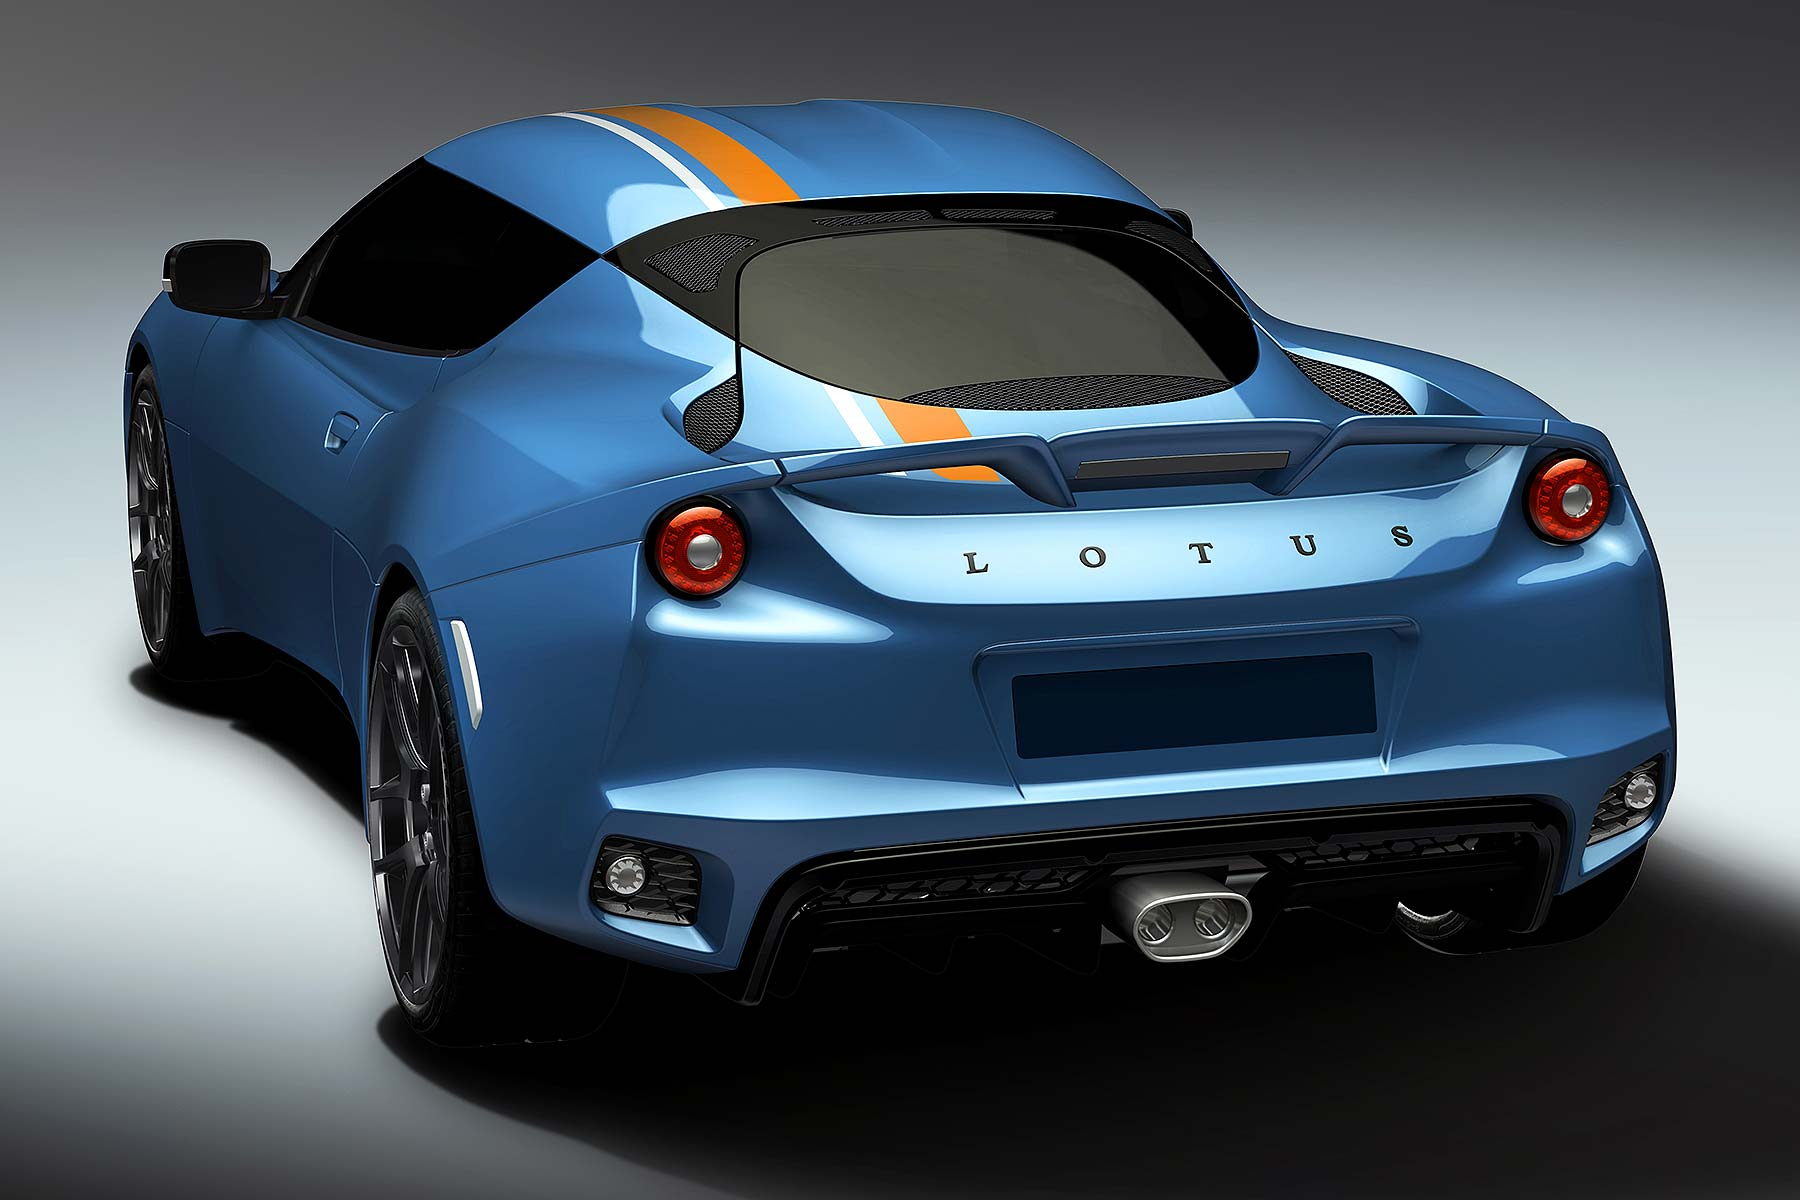 Lotus Evora 400 Blue and Orange Edition